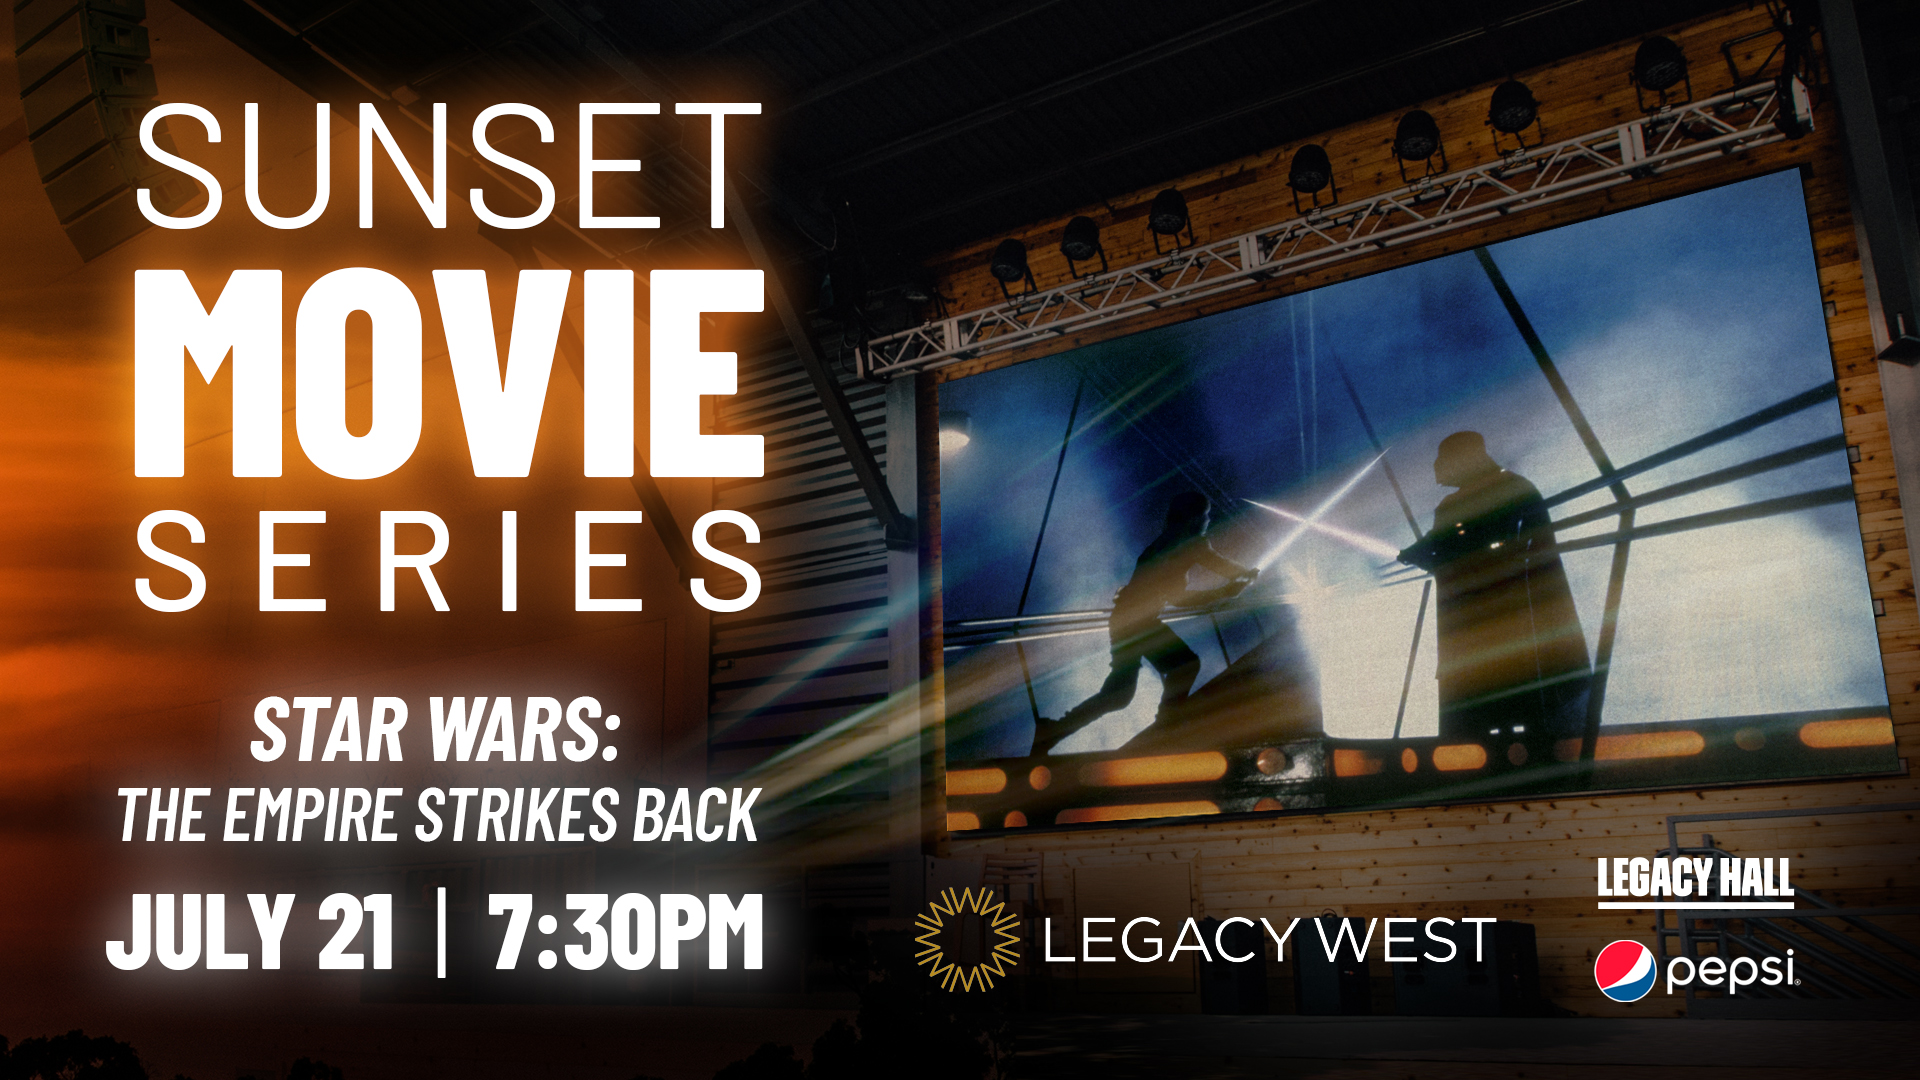 Promo image of Sunset Movie Series: Star Wars: The Empire Strikes Back